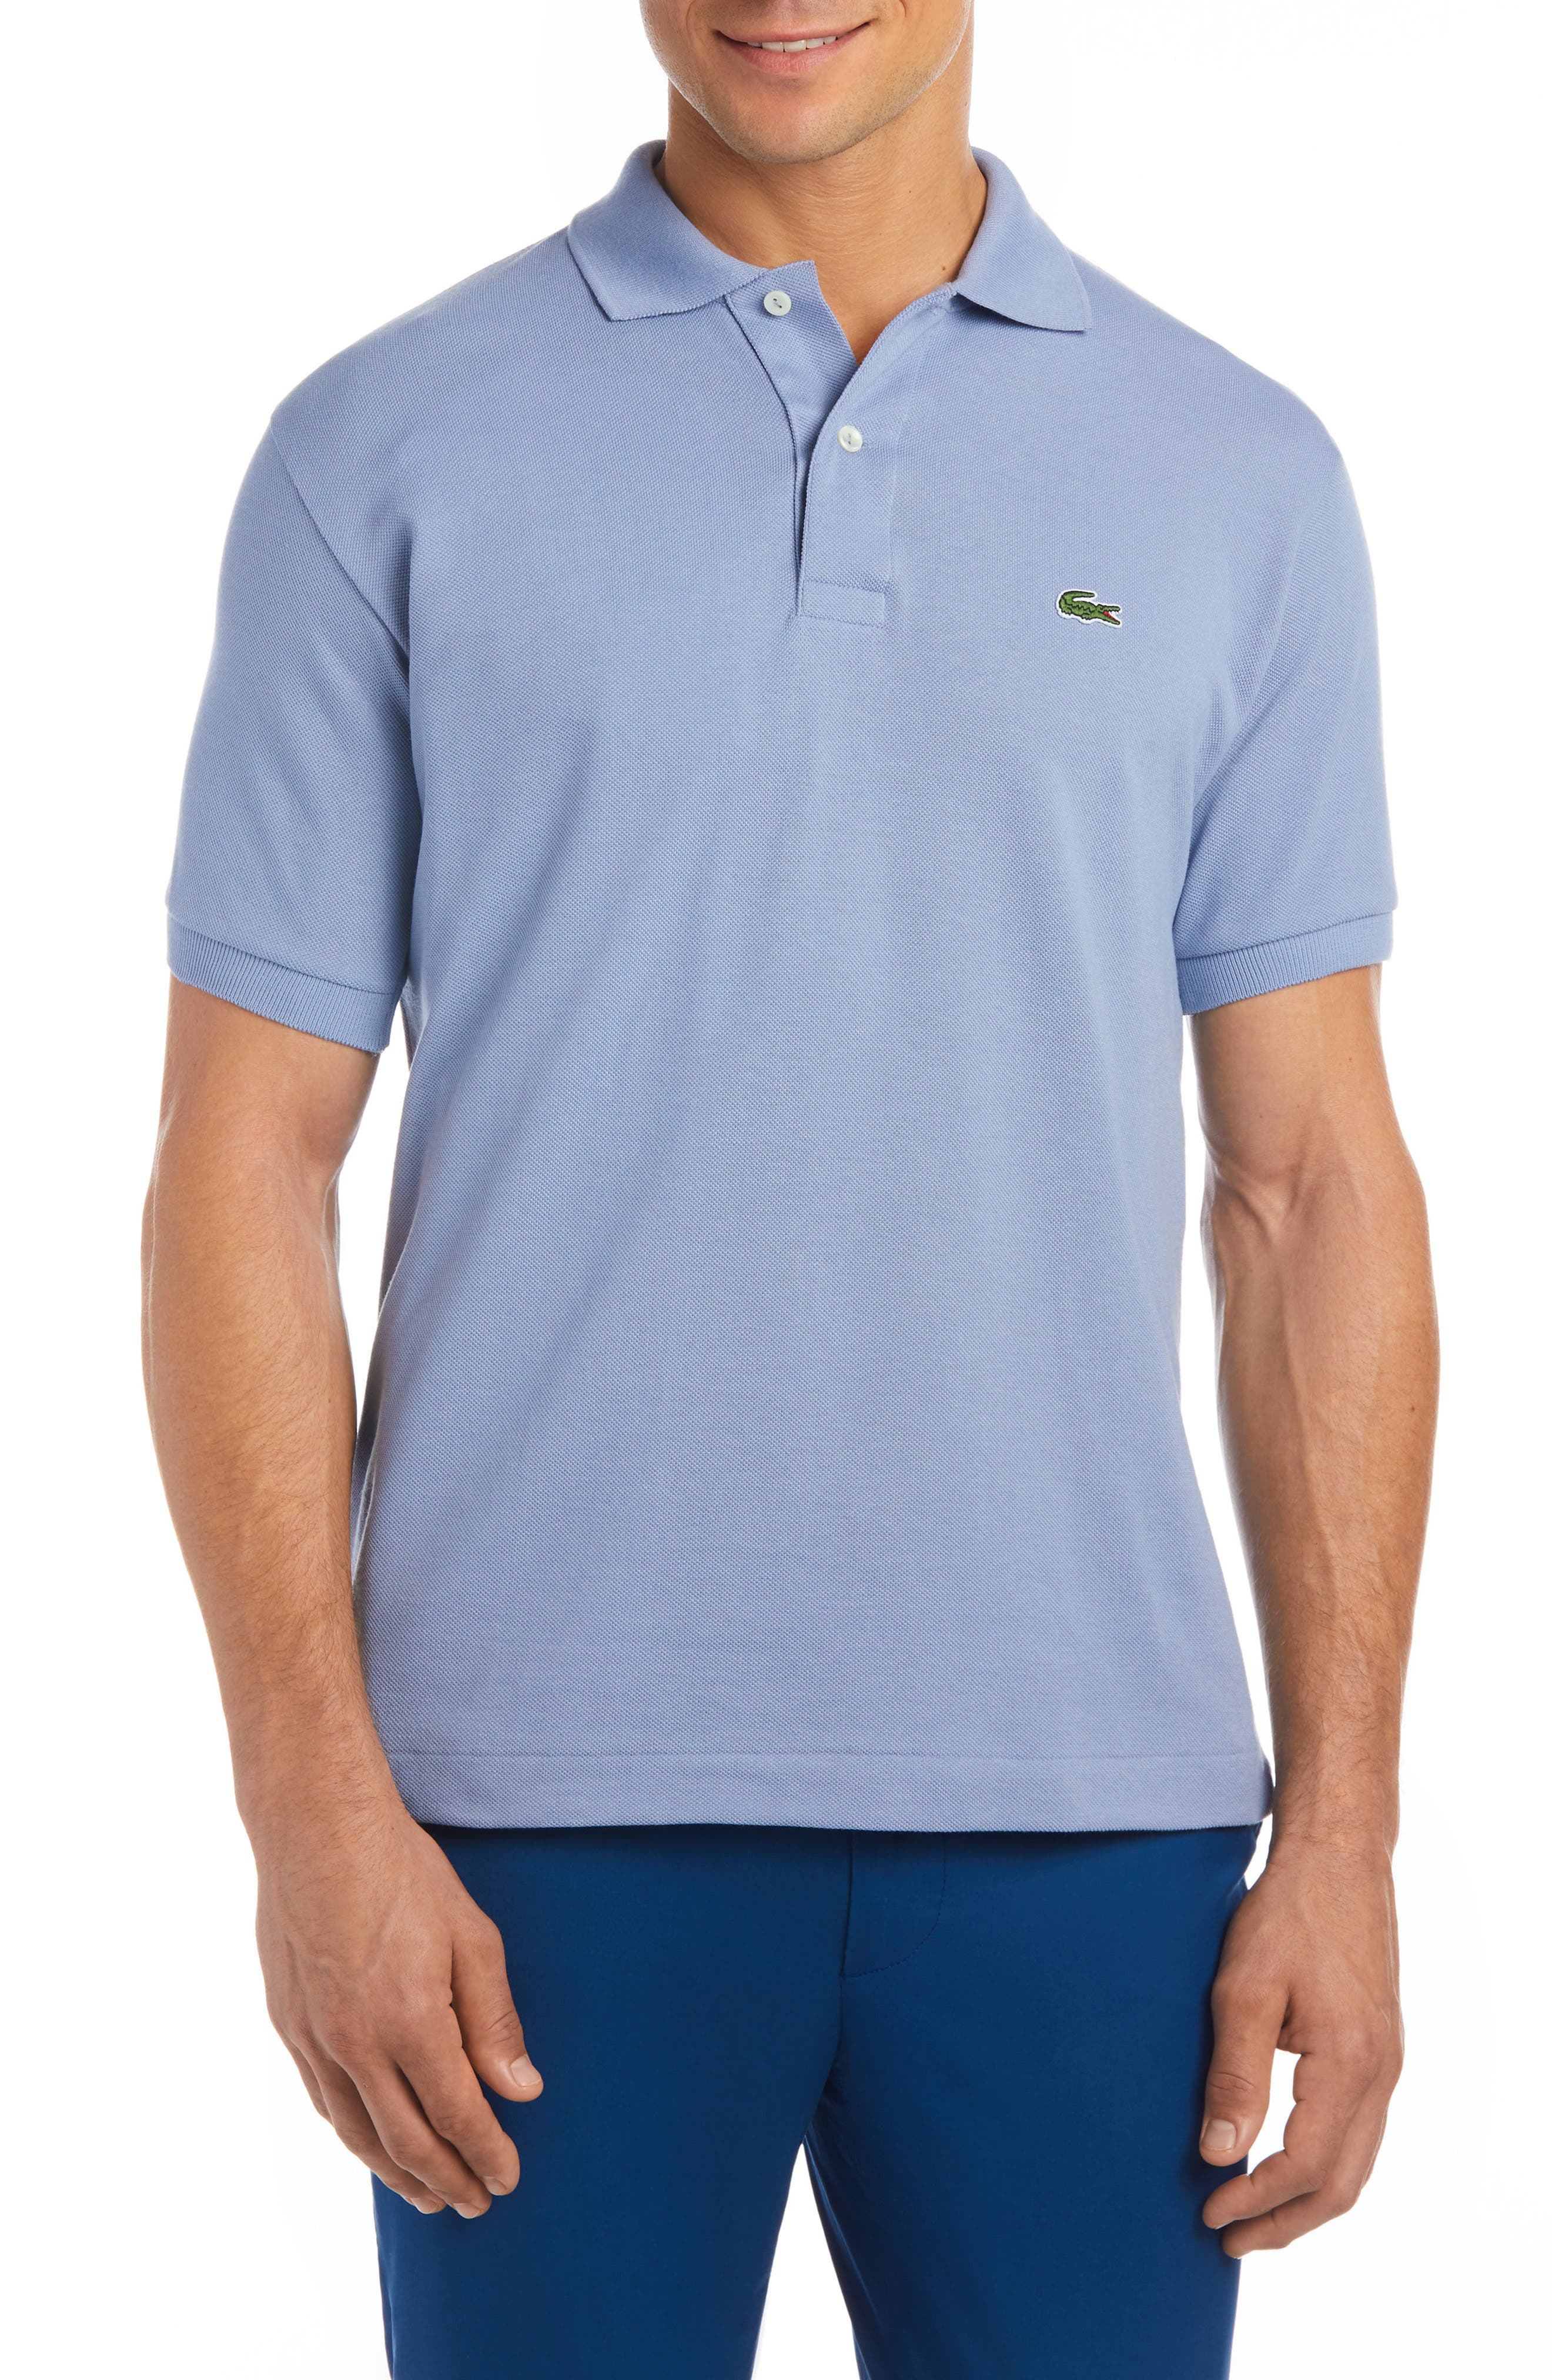 2ca0902db Lacoste T Shirt Polo Outlet